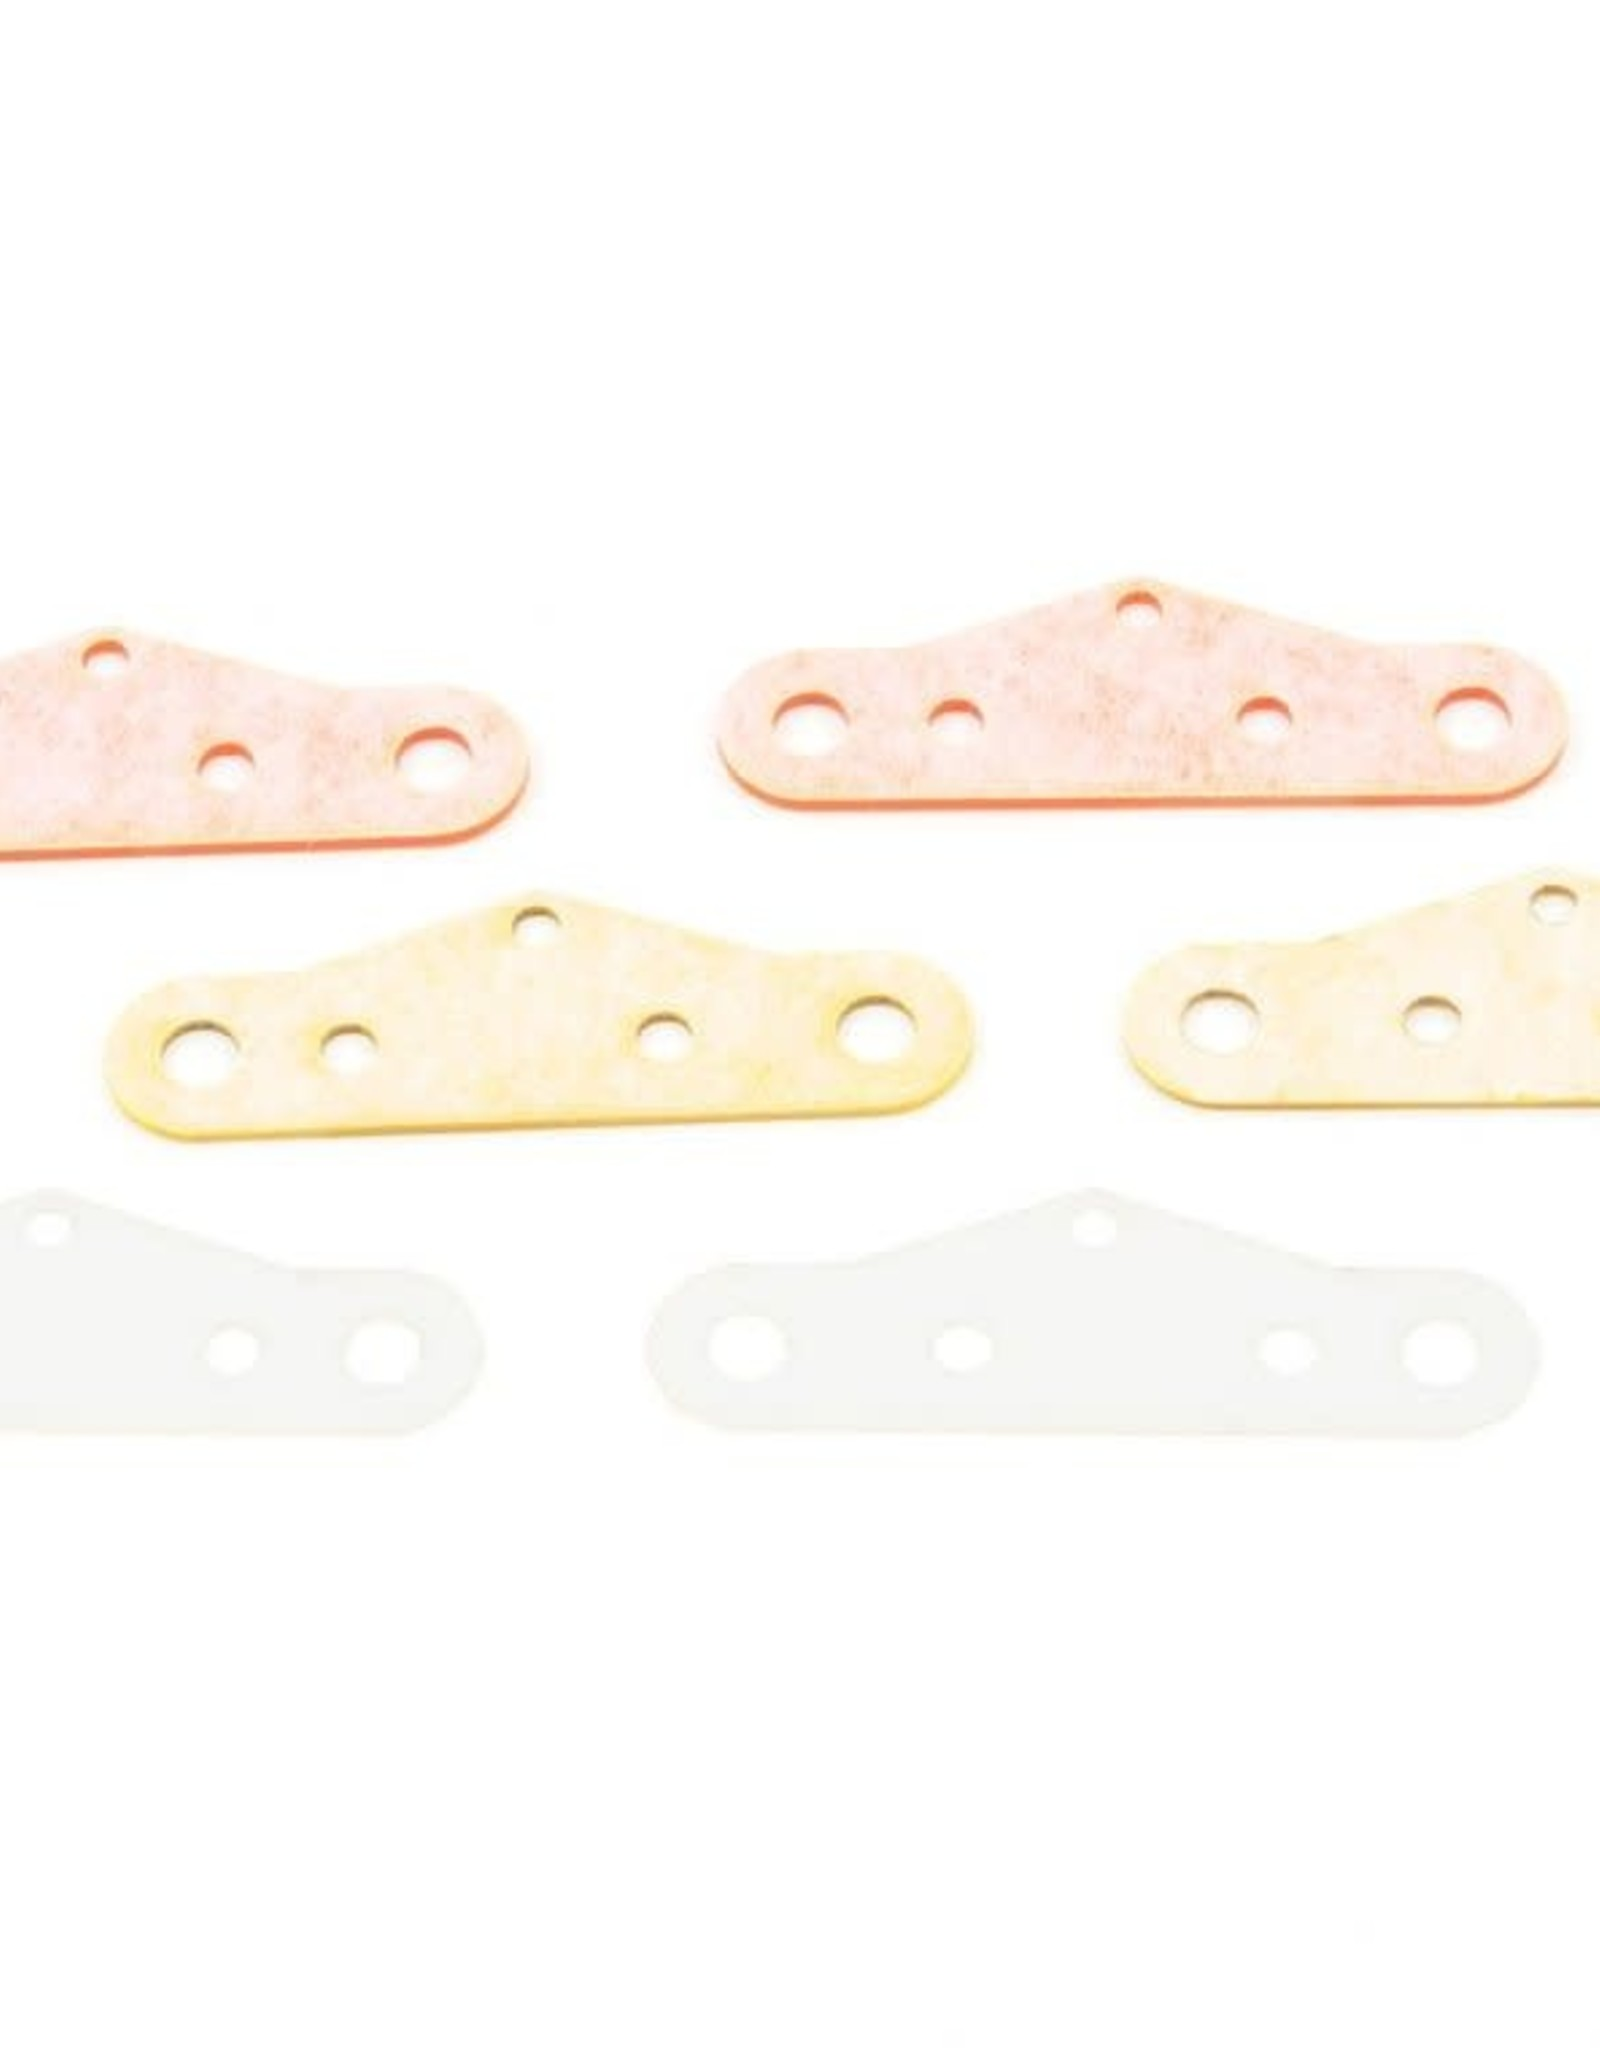 CRC CRC Front Ride Height Shim Set (0.010, 0.020 & 0.030)